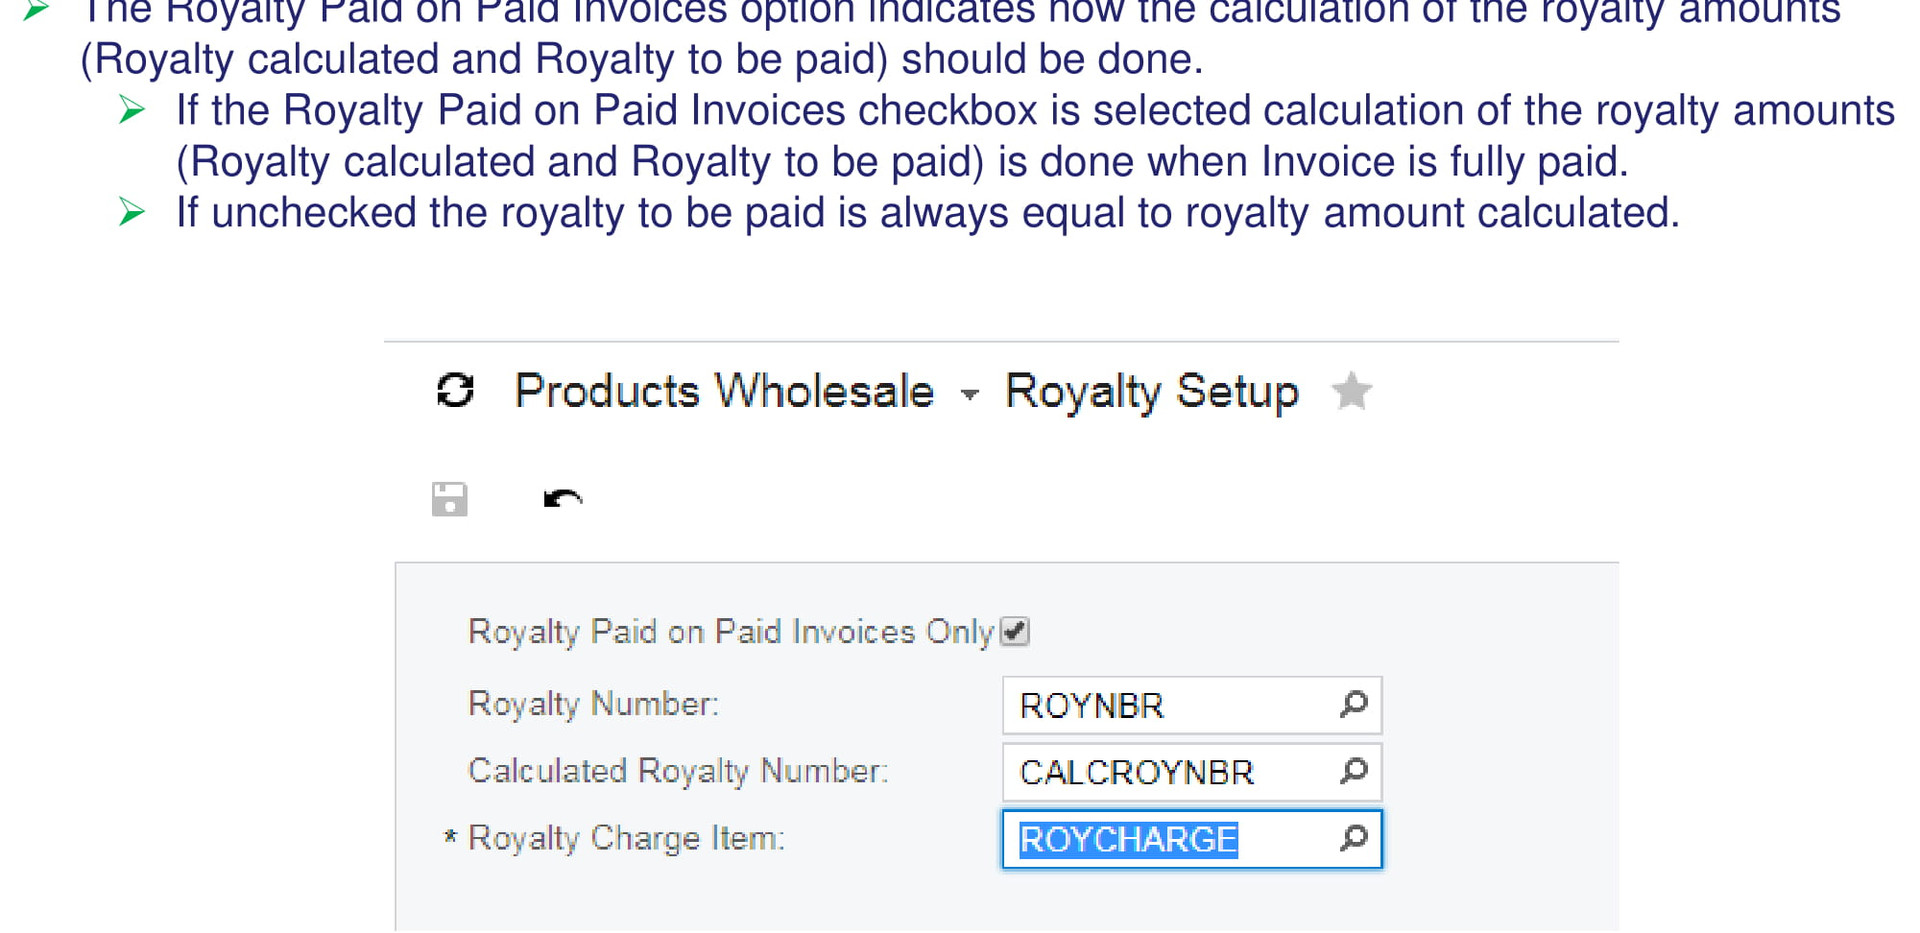 Royalty_Processing PP-05.jpg